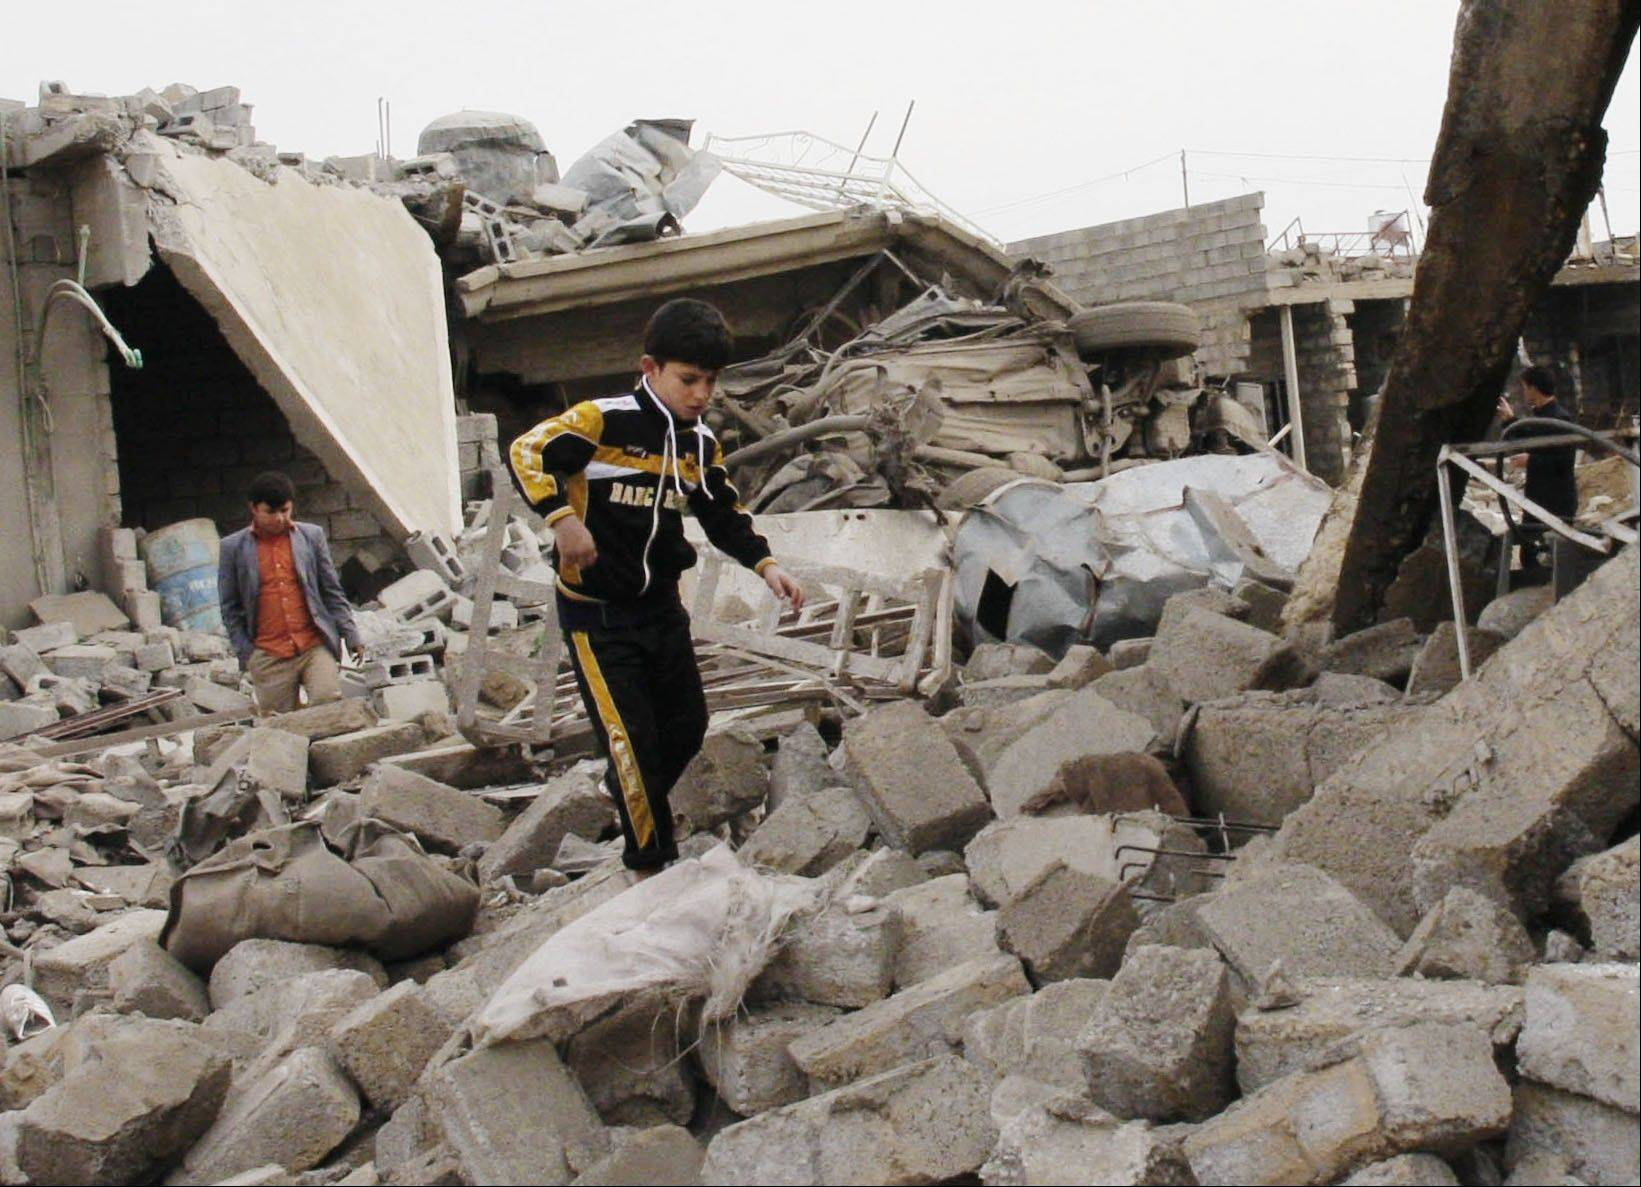 A boy walks in rubble at the scene of a car-bomb attack in al-Mouafaqiyah, a village inhabited by families from the Shabak ethnic group, near the city of Mosul, 225 miles northwest of Baghdad, Iraq, Monday.